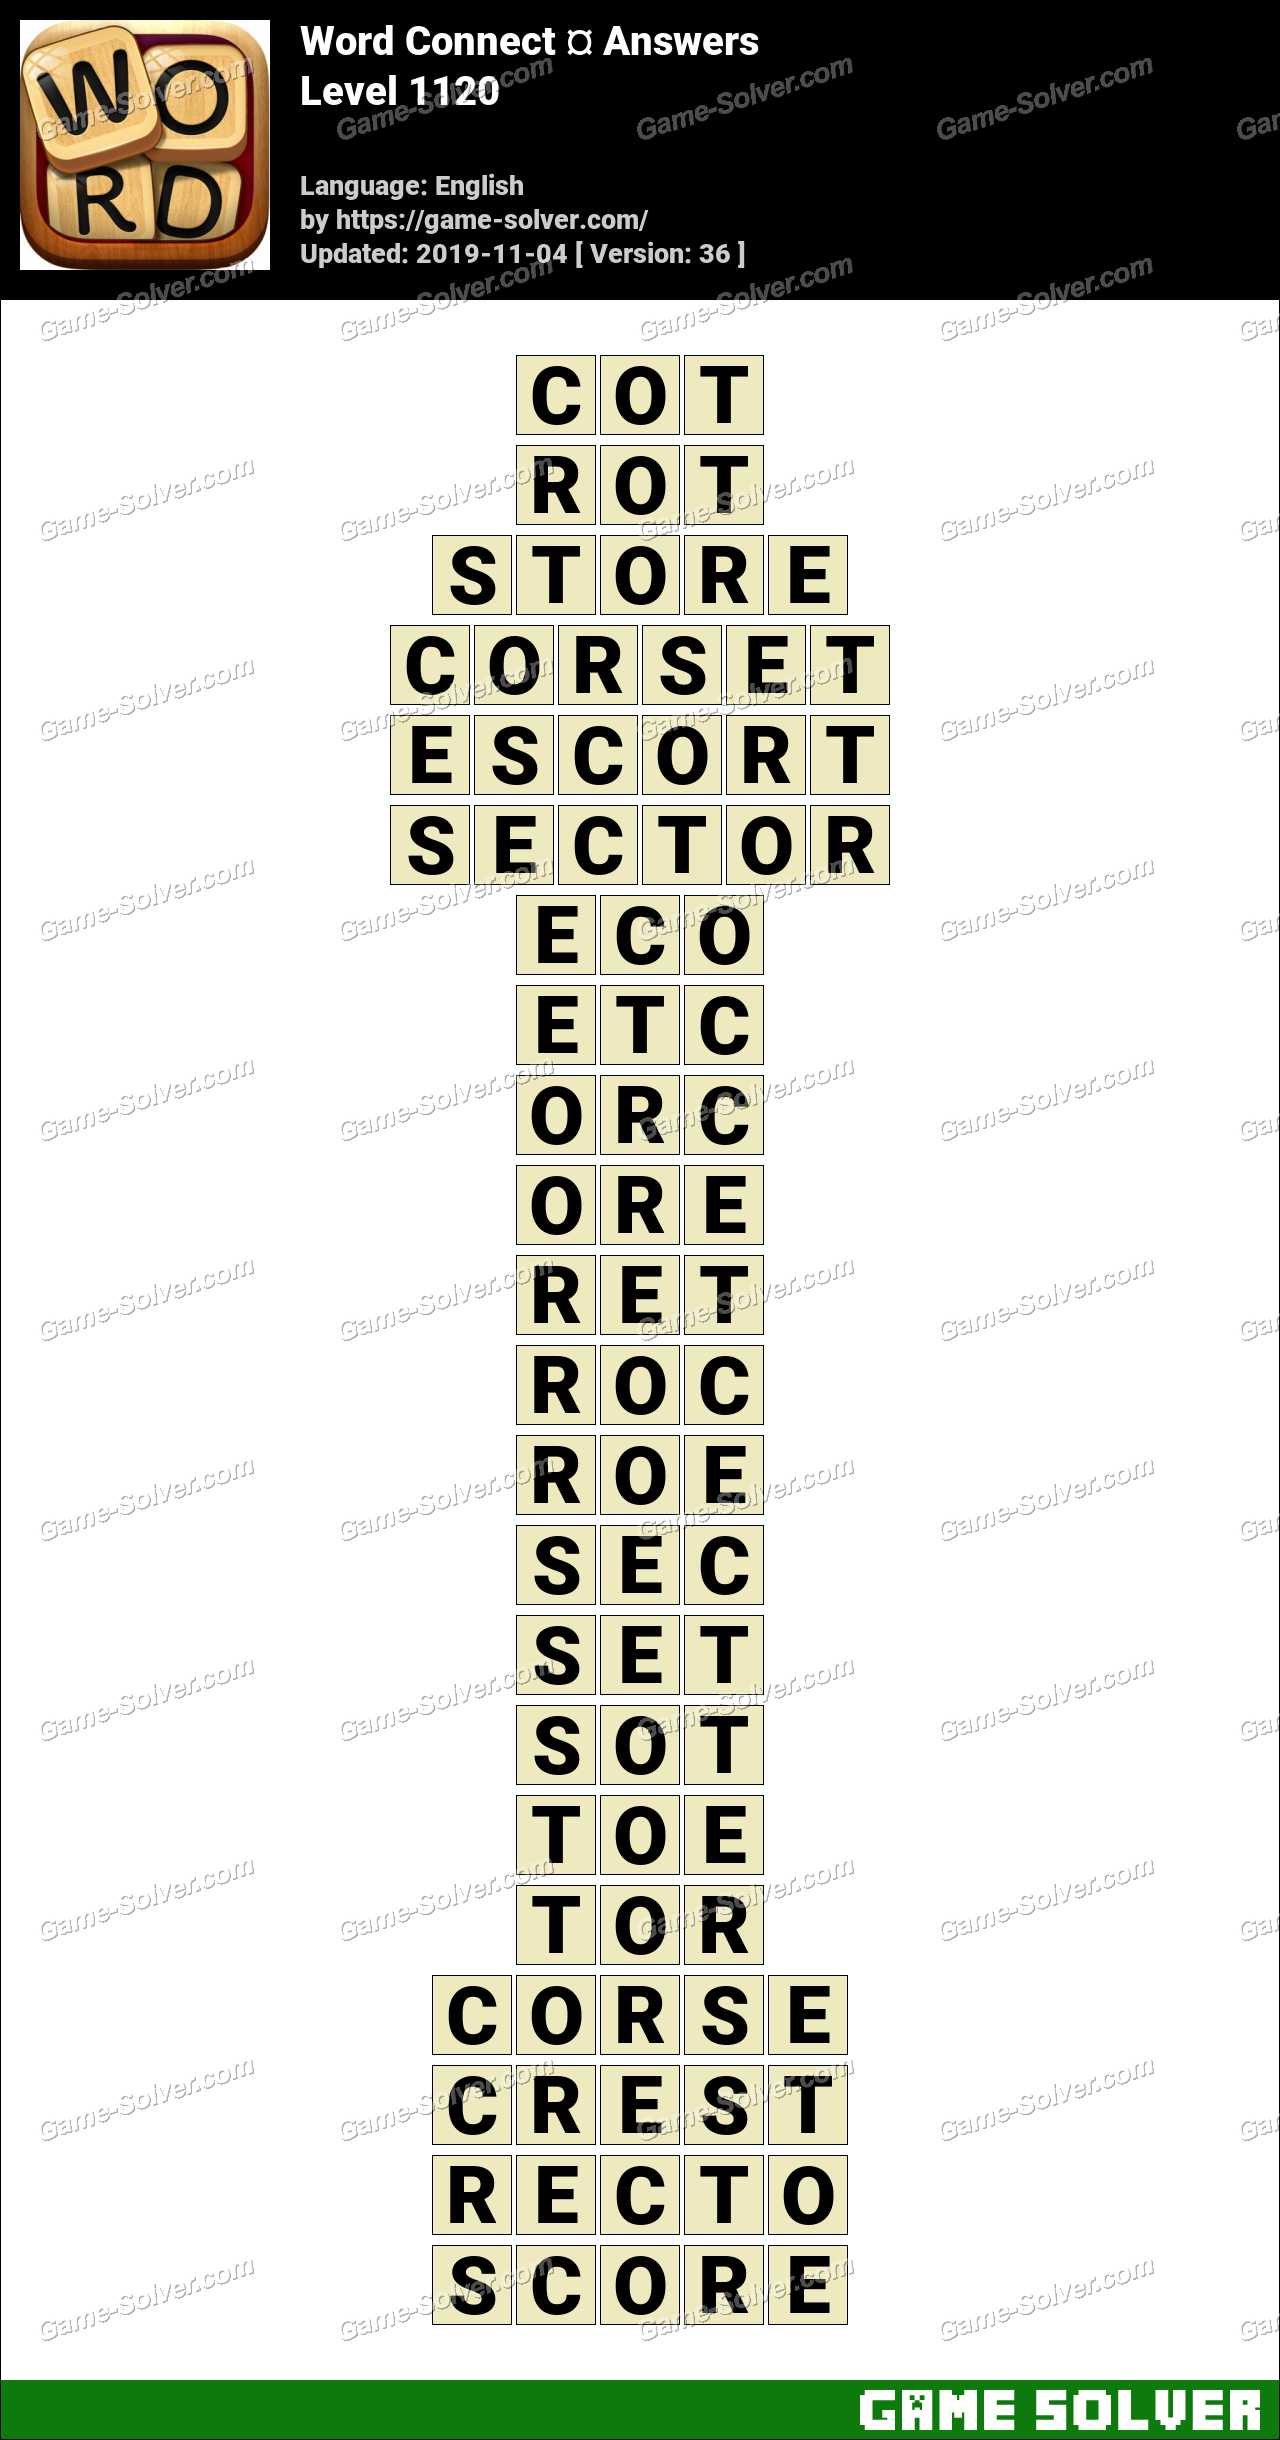 Word Connect Level 1120 Answers